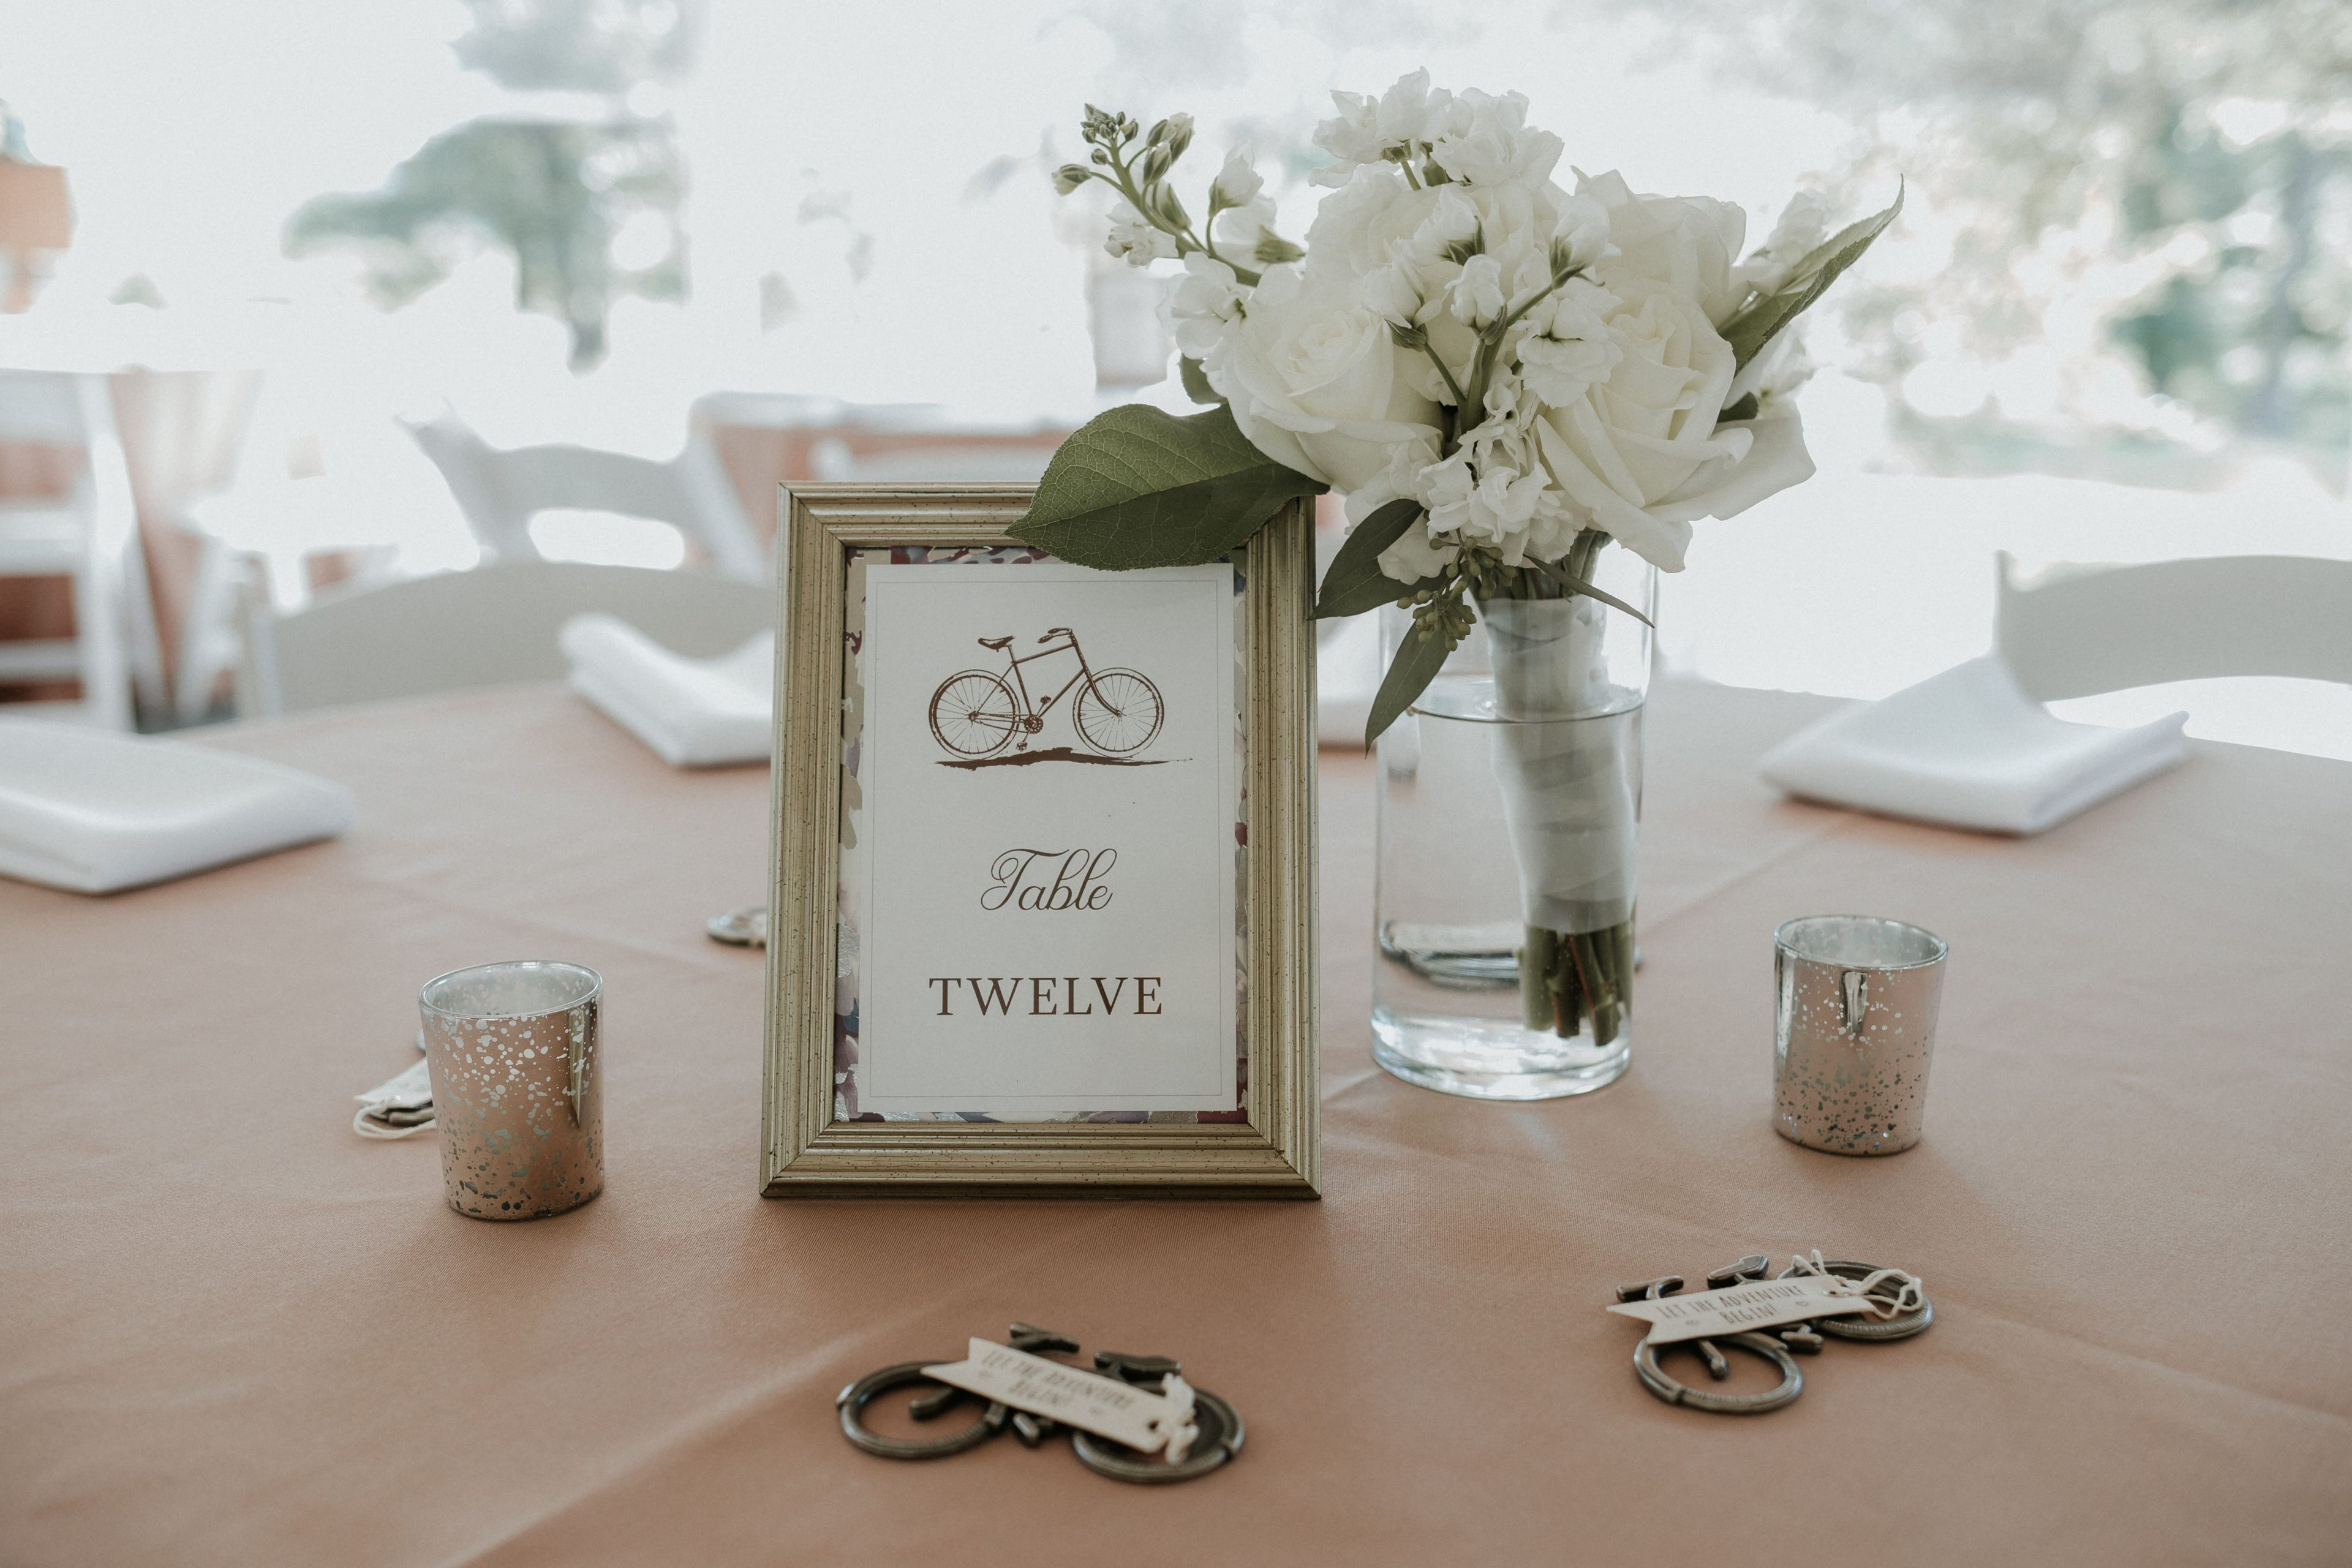 Bicycle themed wedding at The Ivy Place featured custom bicycle table numbers and bicycle bottle opener favors for guests all designed by Magnificent Moments Weddings